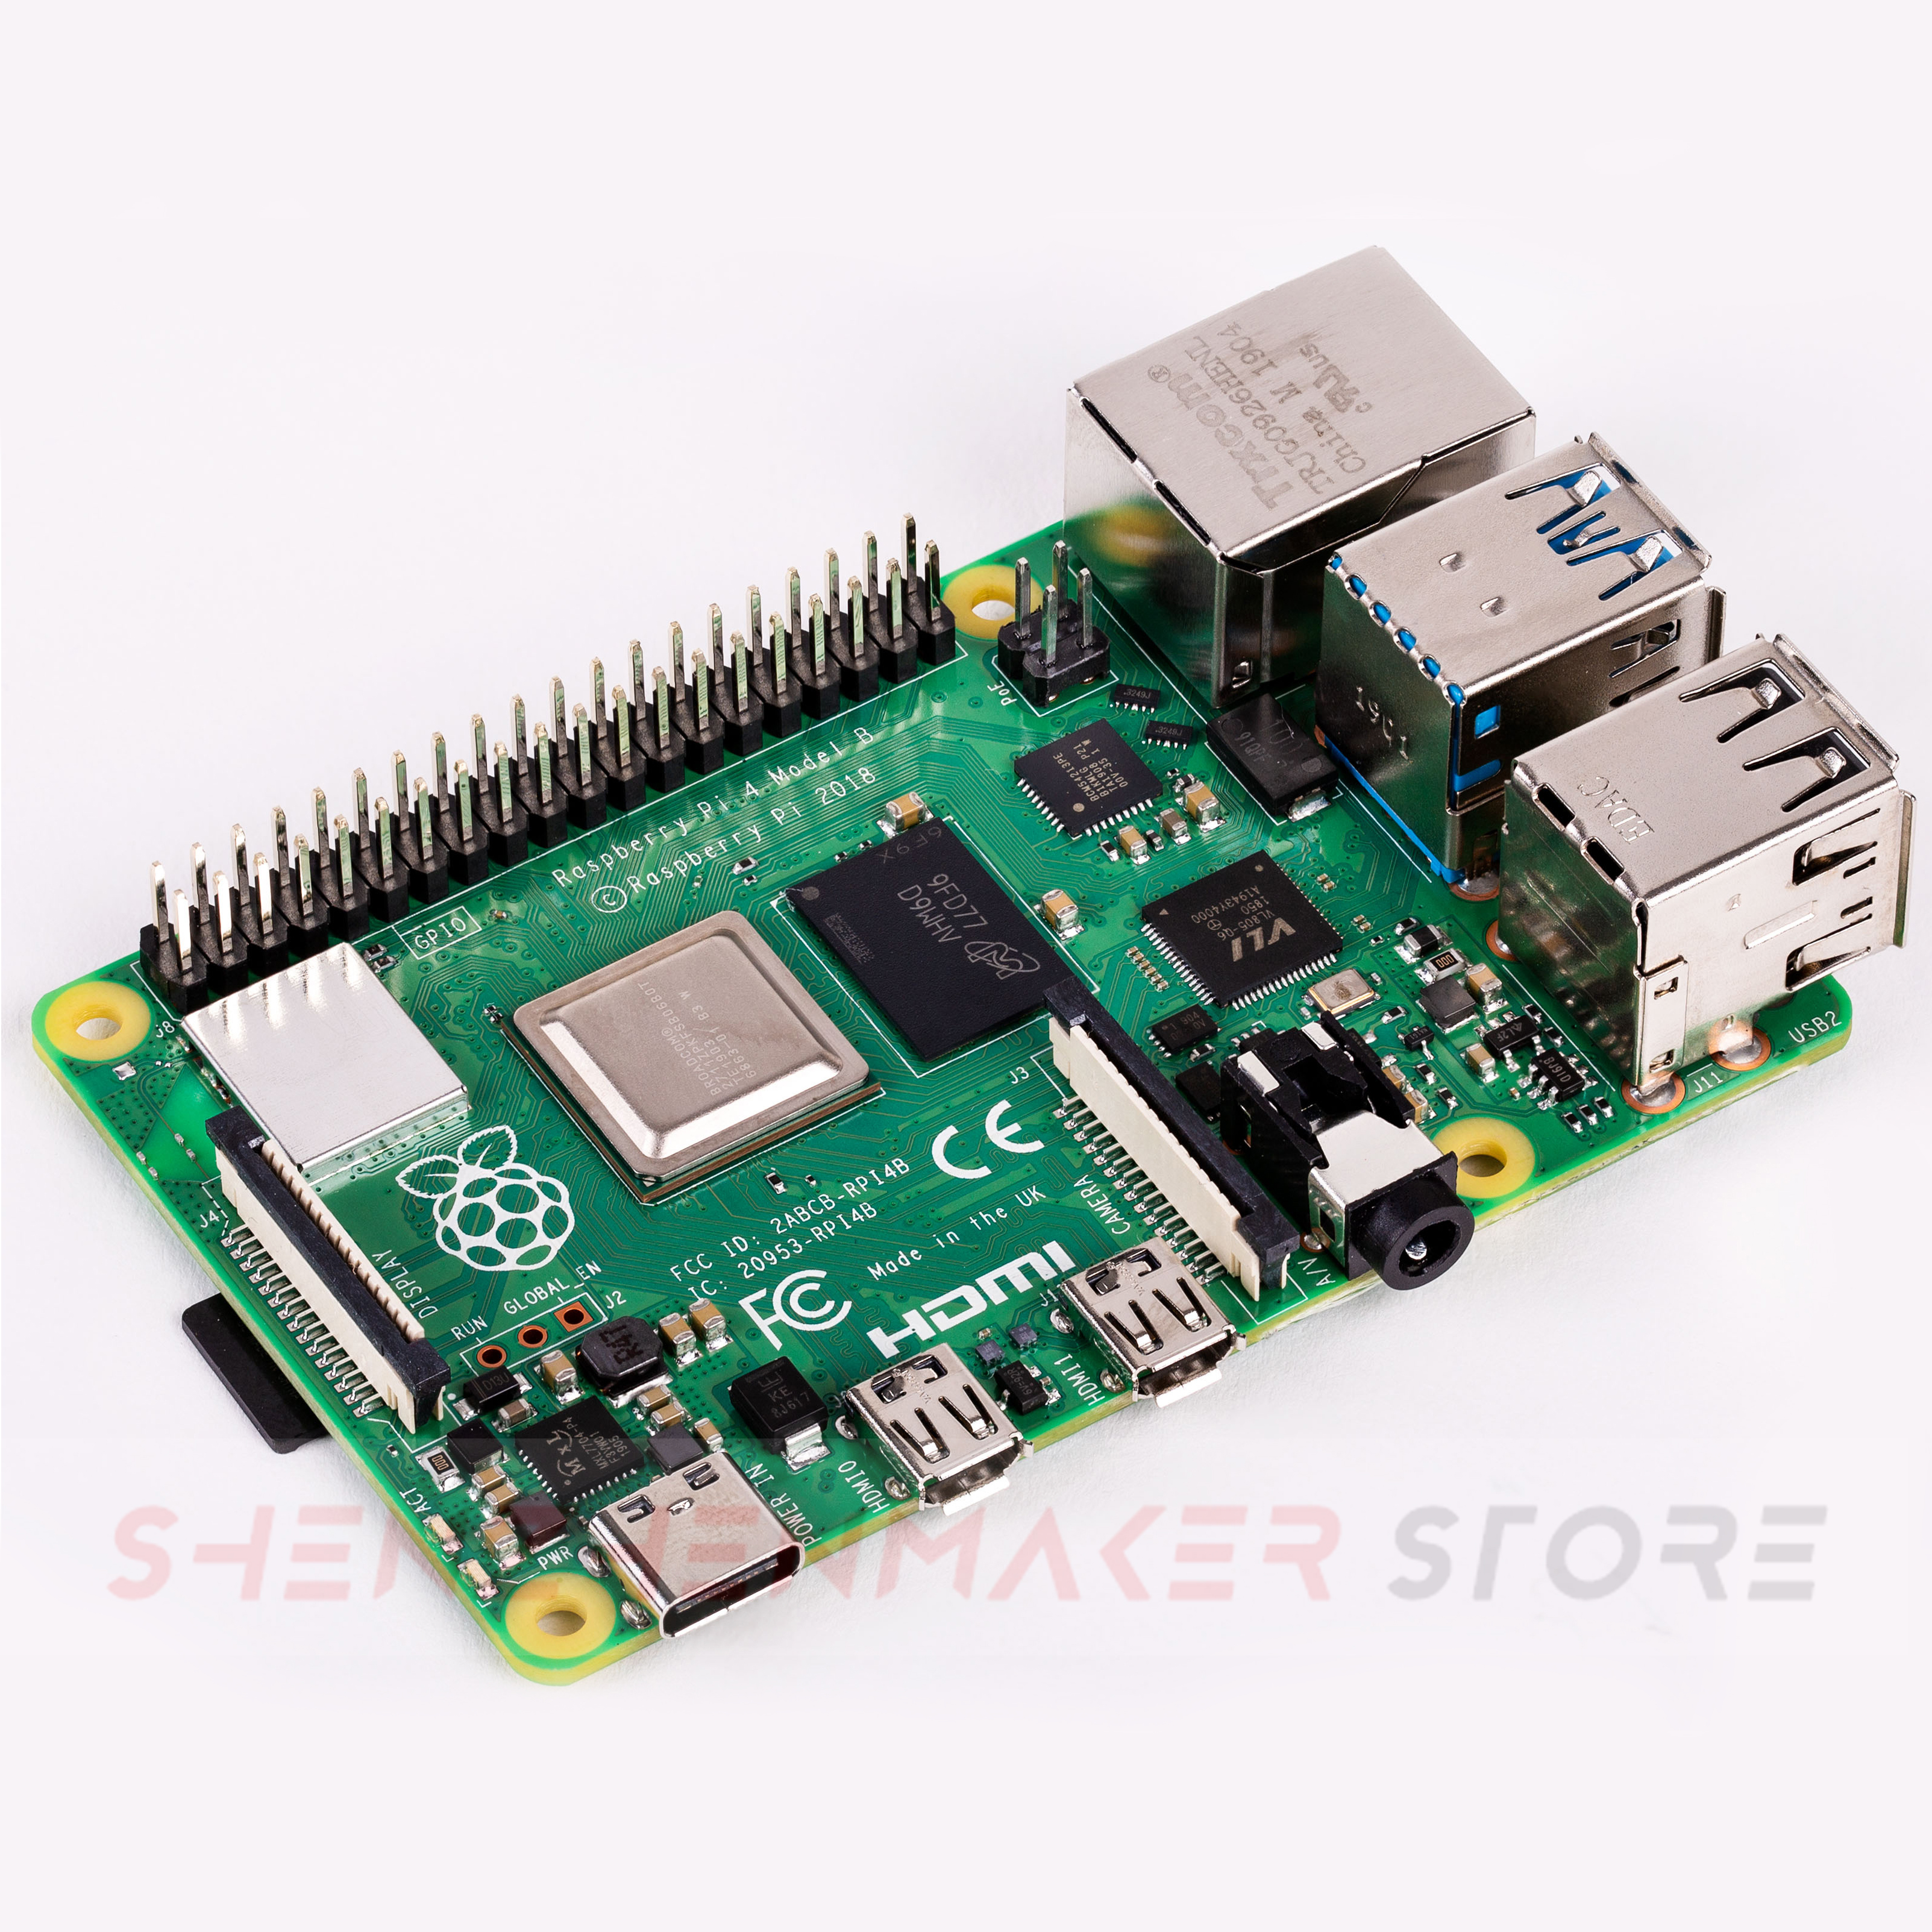 ShenzhenMaker Store Brand new Raspberry Pi 4 Model B 1GB 2GB 4GB RAM Type C Port Computer   IN STOCK-in 3D Printing Materials from Computer & Office